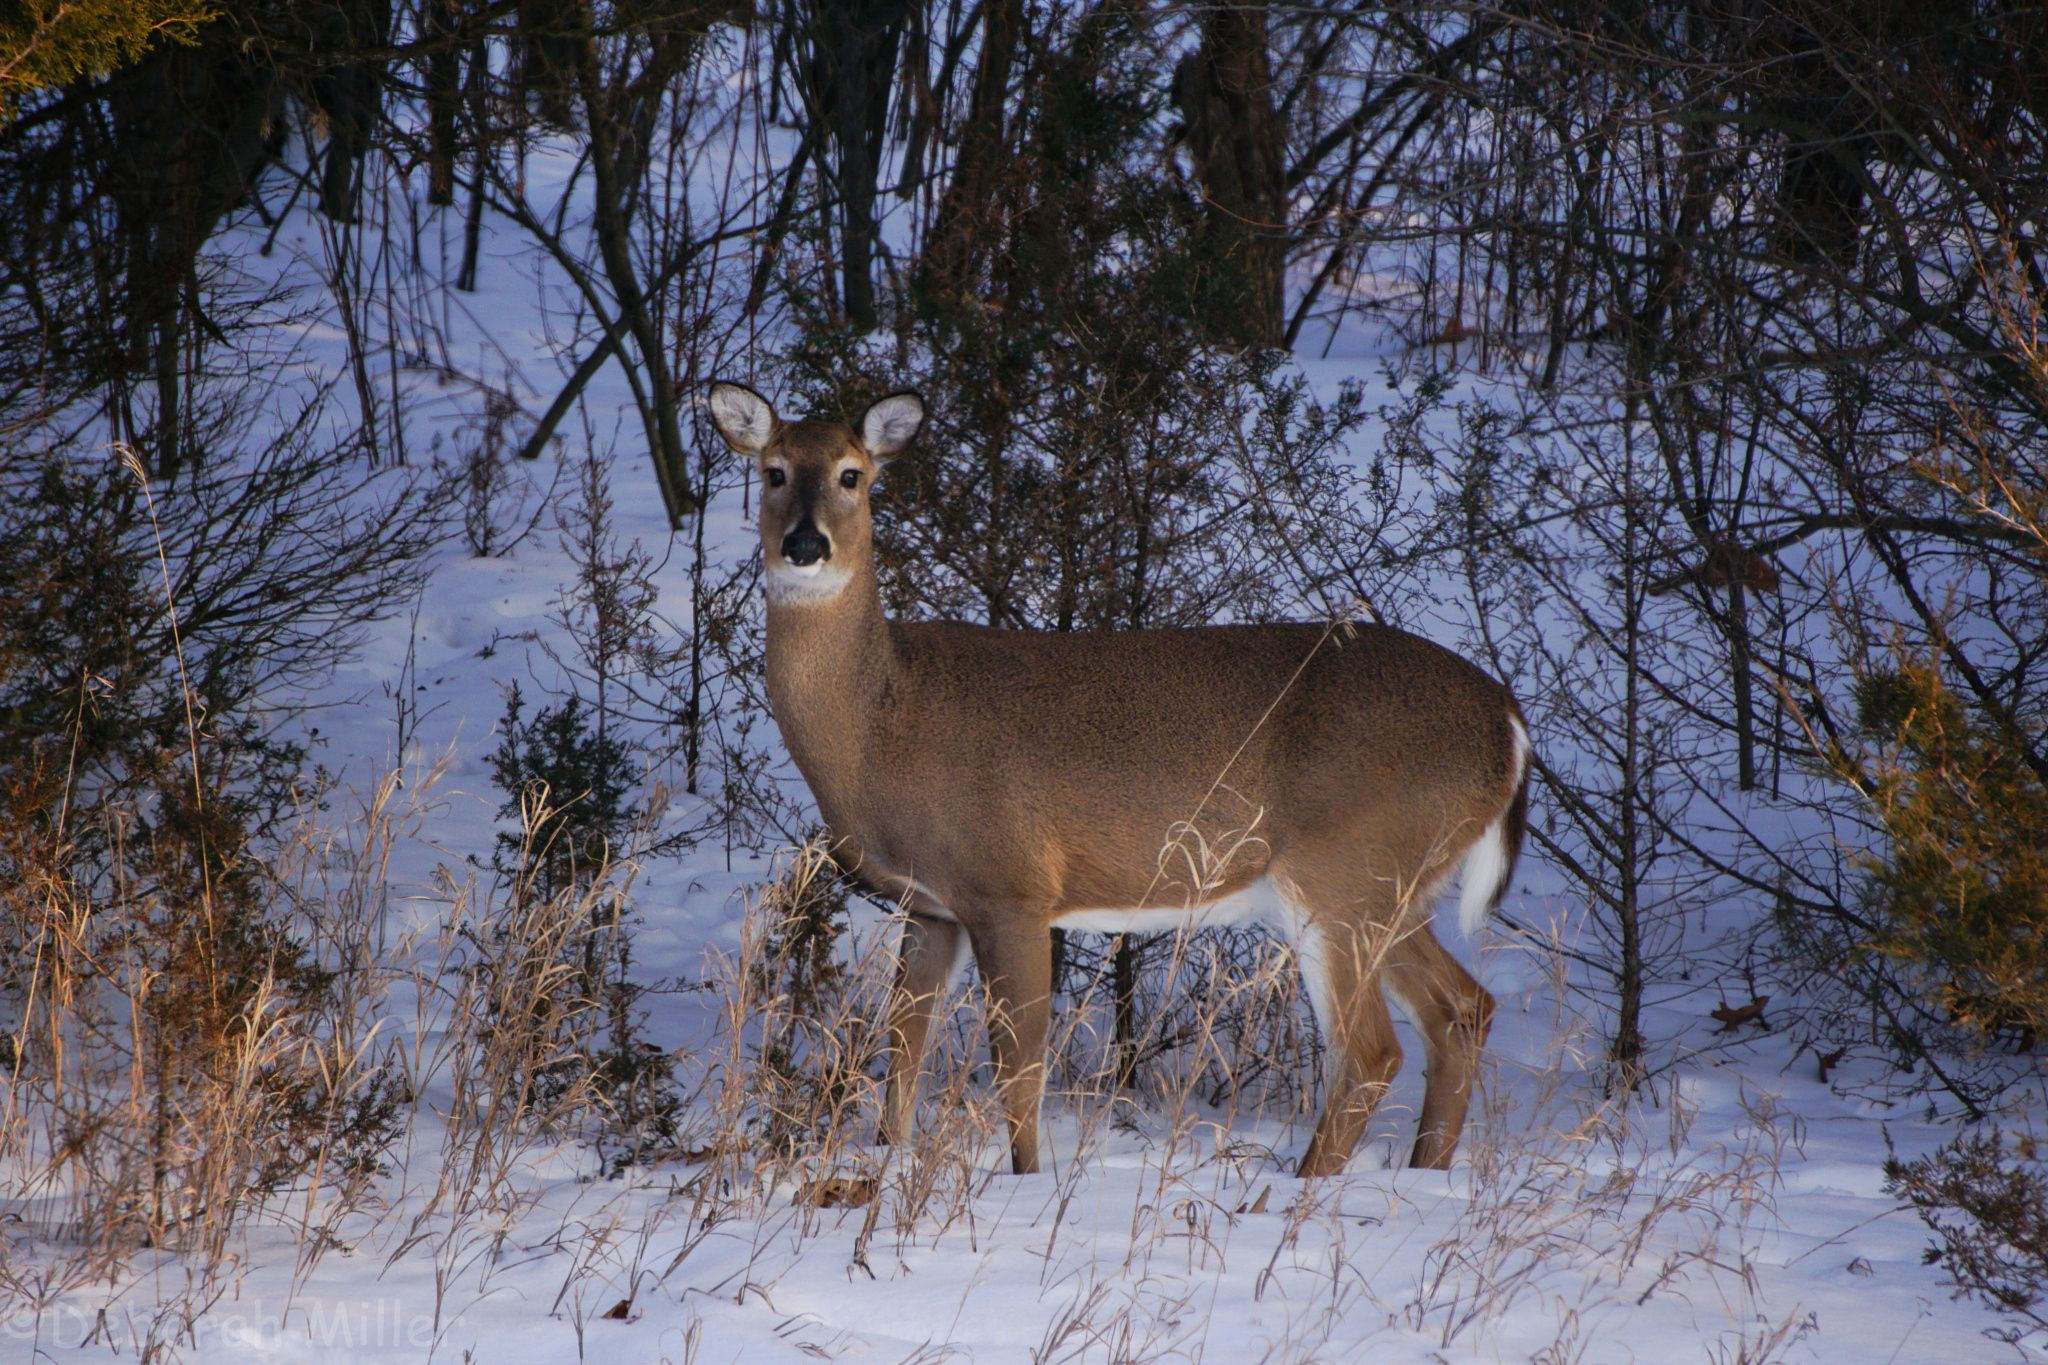 Deer in Kensington, on the side of the road by Deborah Miller on 500px